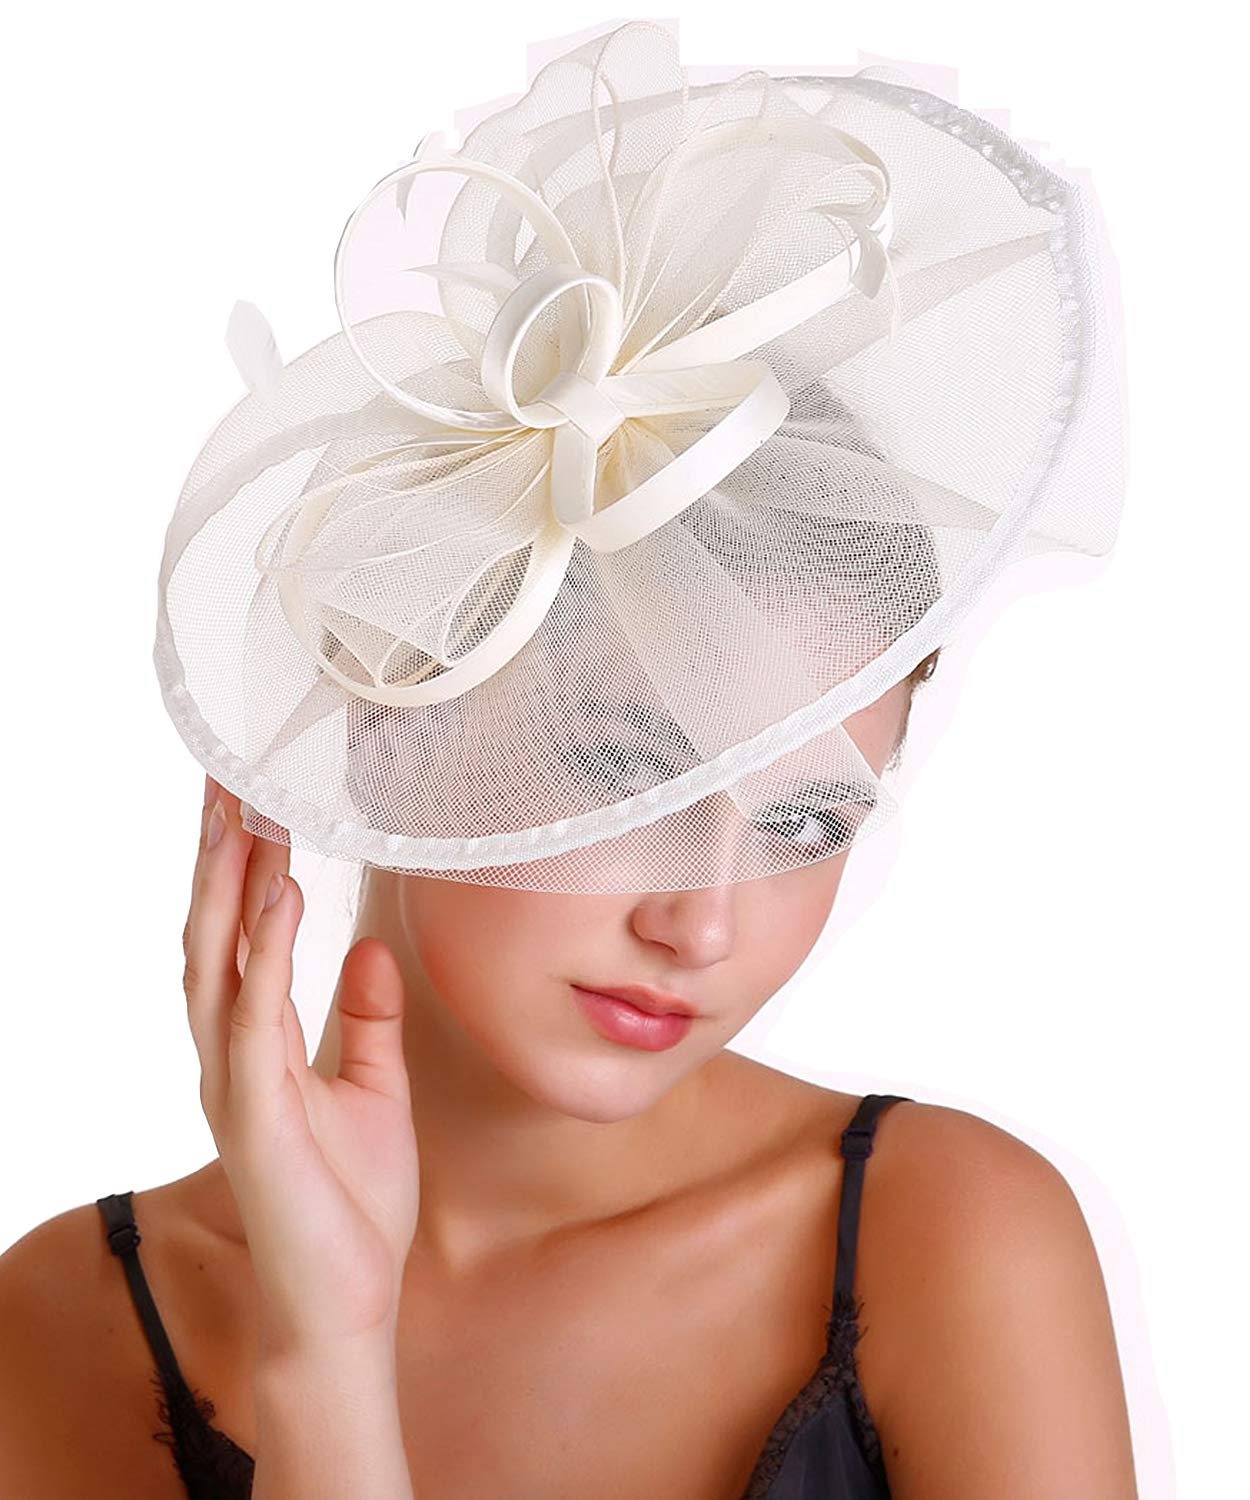 048a8470 Get Quotations · Women Derby Fascinator Hat,Tea Party Hats Mesh Feathers  Cocktail Fascinators Headband/Hair Clip